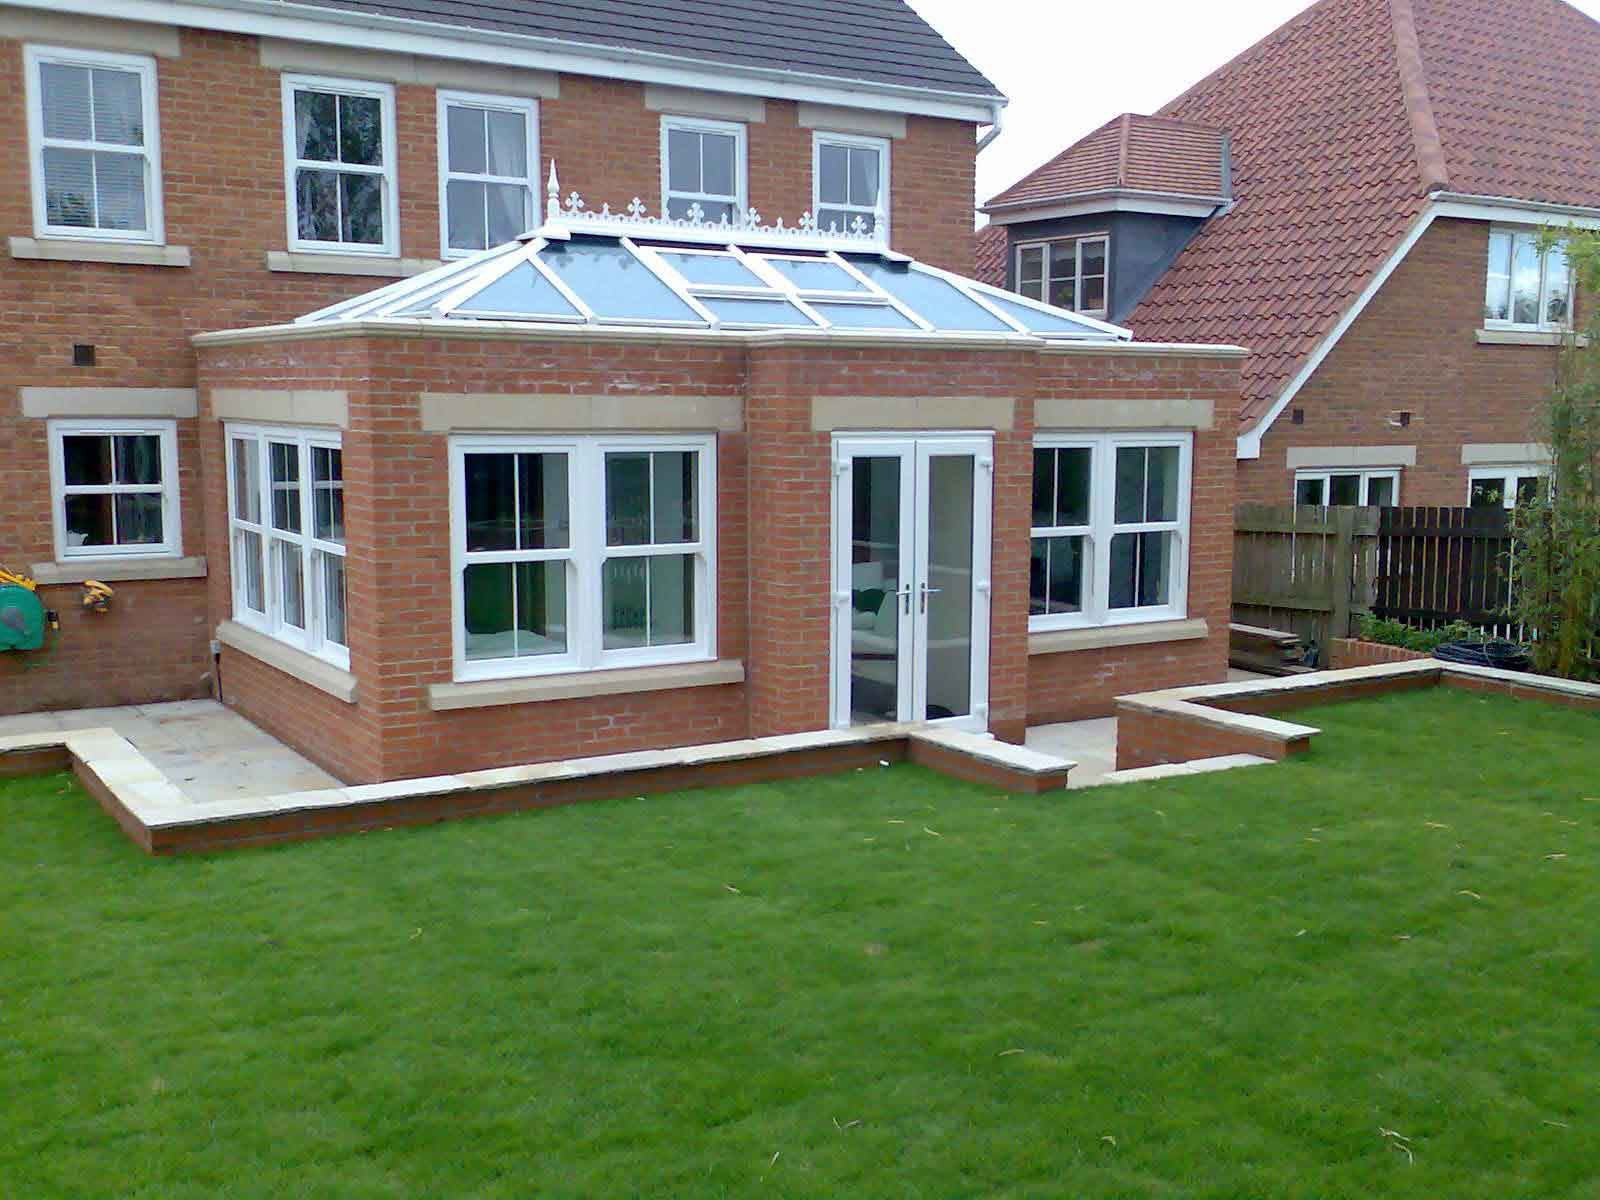 Conservatories concept windows and conservatories essex - Solid Roof Edwardian Conservatories Guardian Warm Roof Conservatories From Permaframe Home Pinterest Extensions Extension Ideas And House